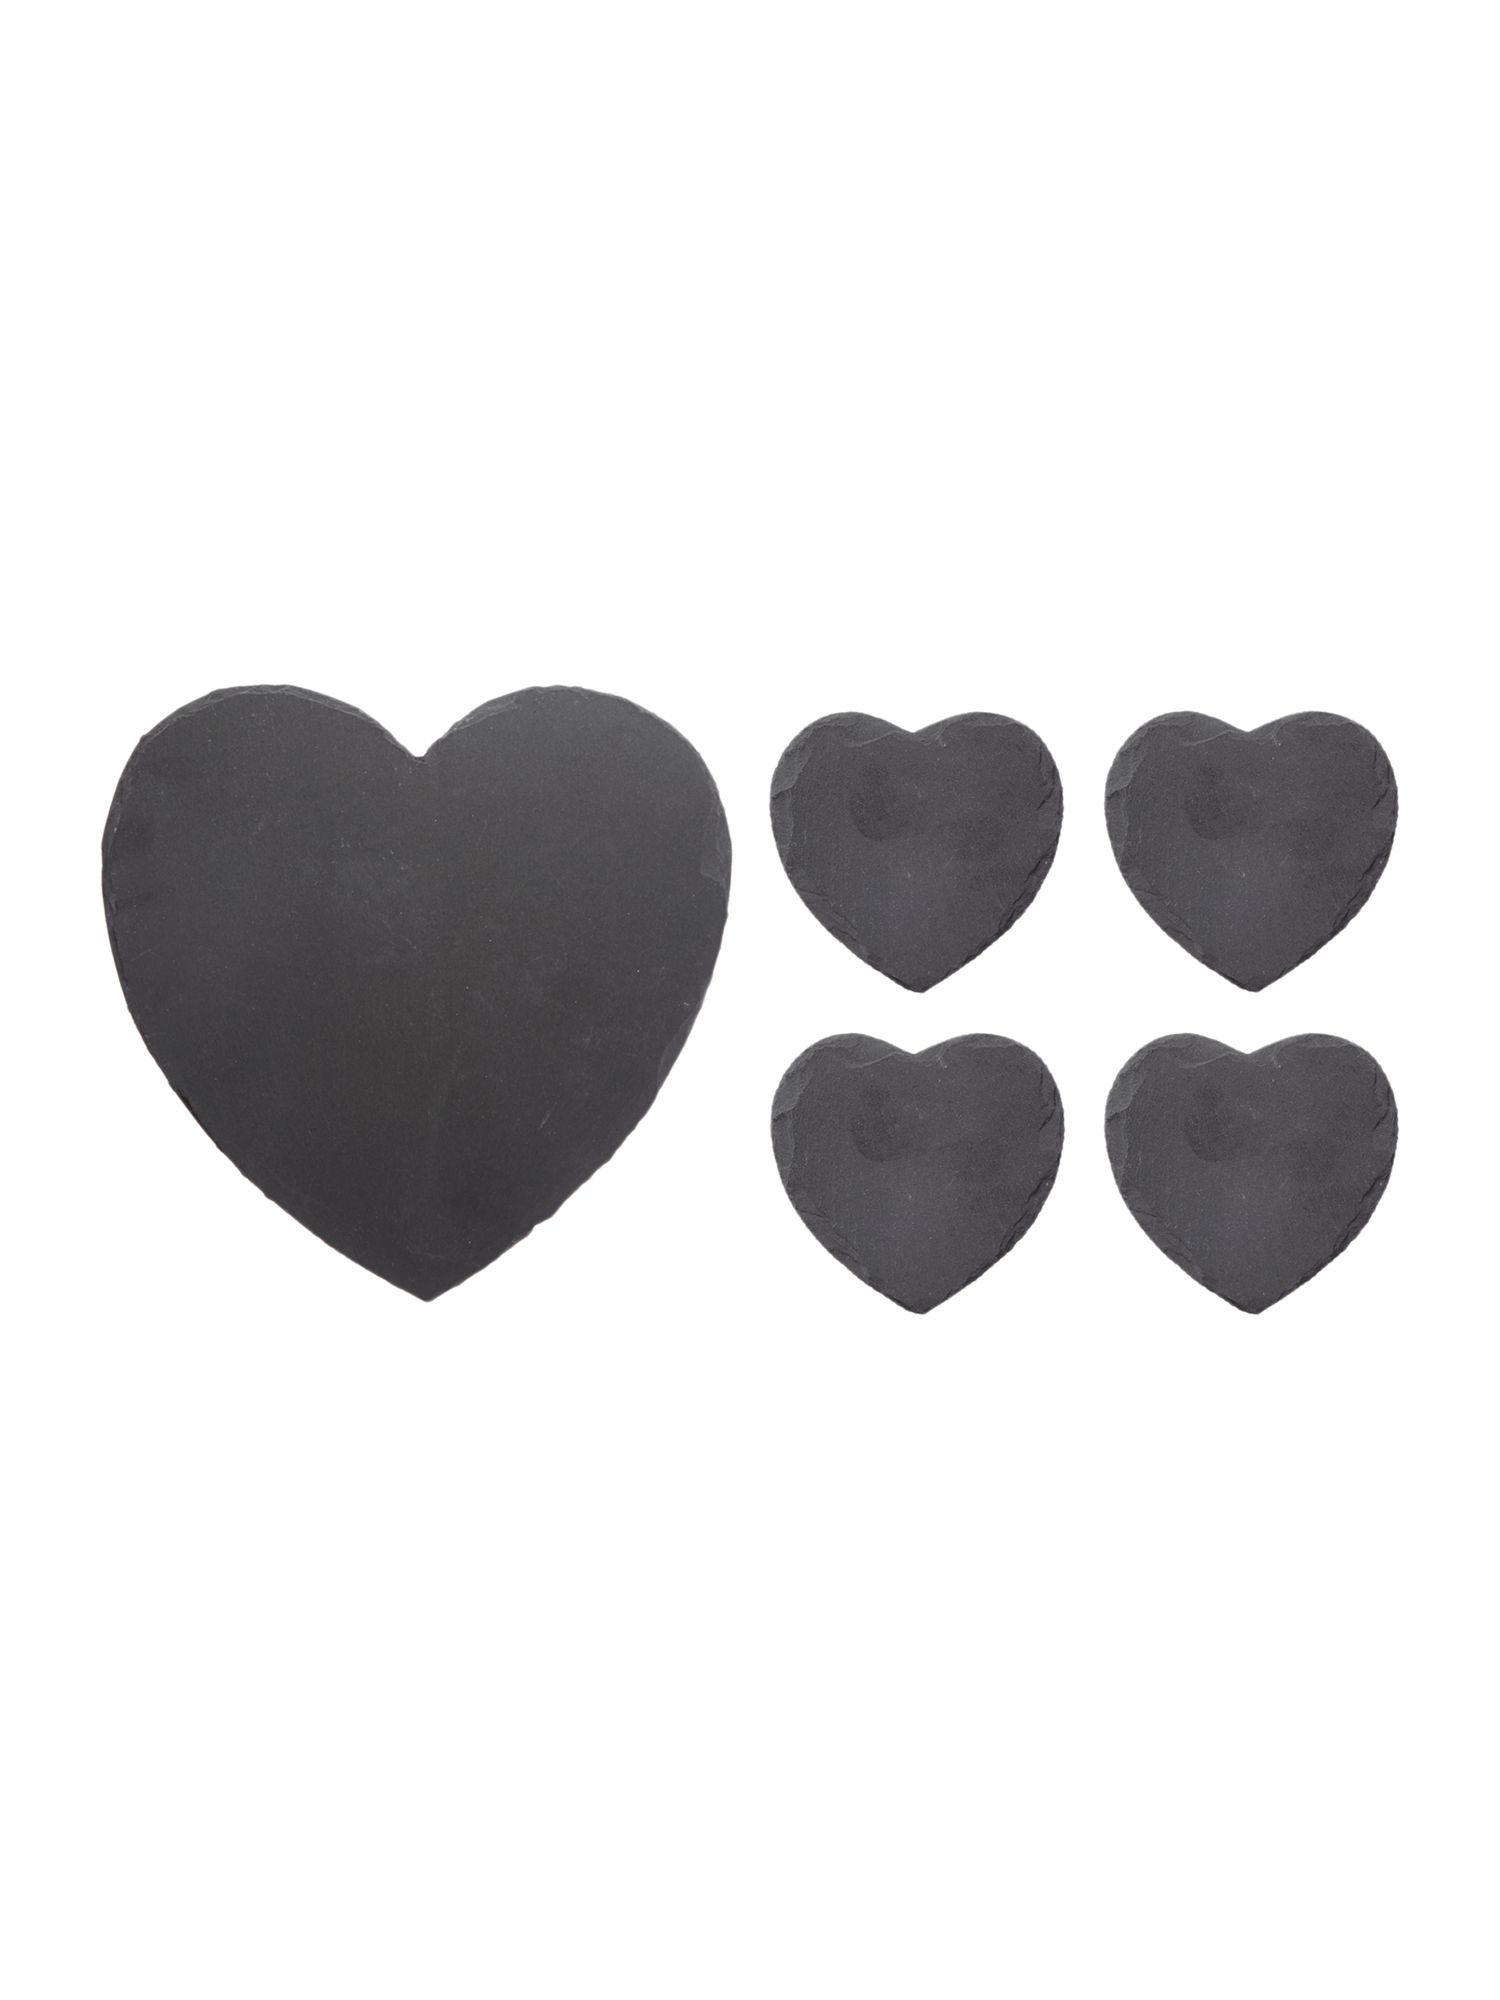 Slate Heart Tablelinen Range